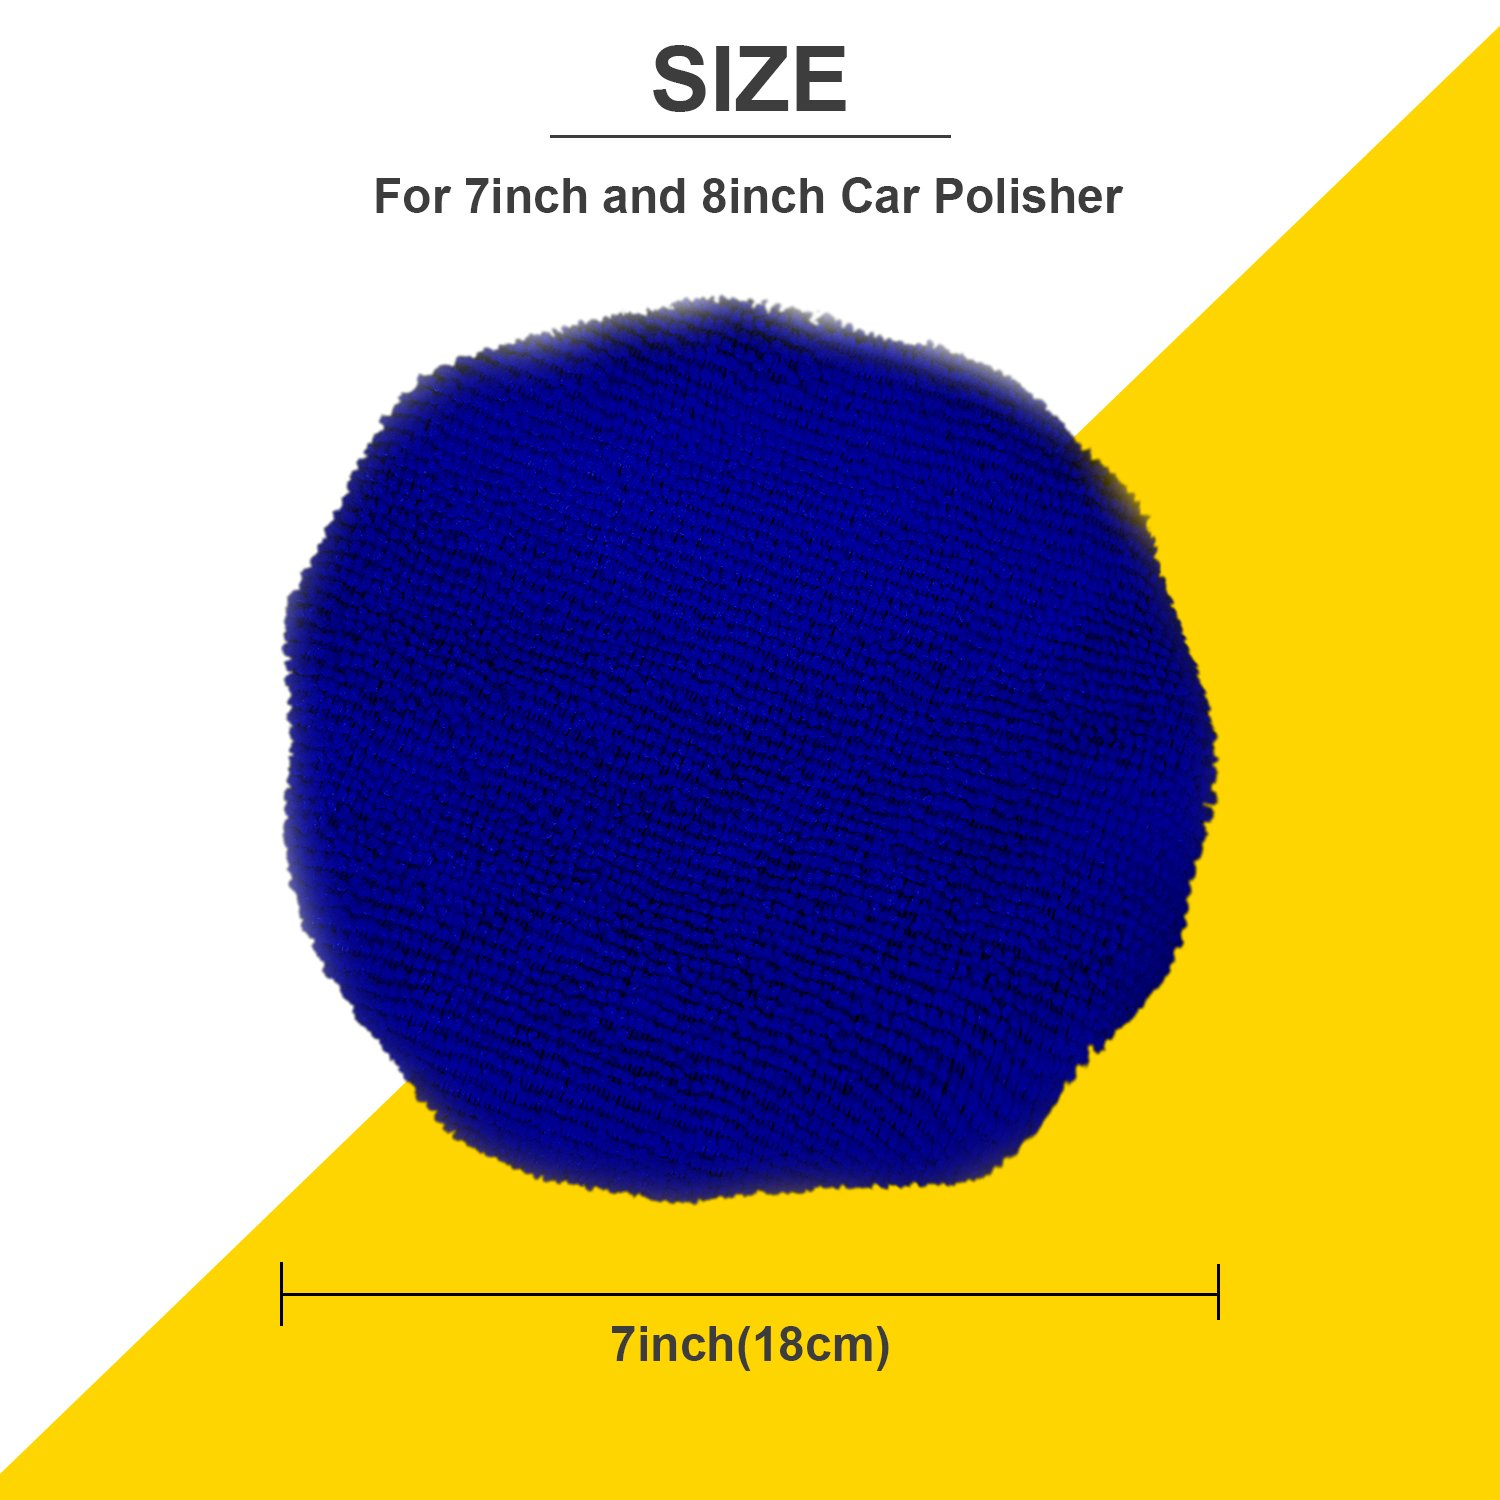 TecUnite 8 Pack Polishing Bonnet Buffing Pad Cover Soft Microfiber Car Polisher Pad Bonnet for Car Polisher (Dark Blue, 7 to 8 Inches) by TecUnite (Image #3)